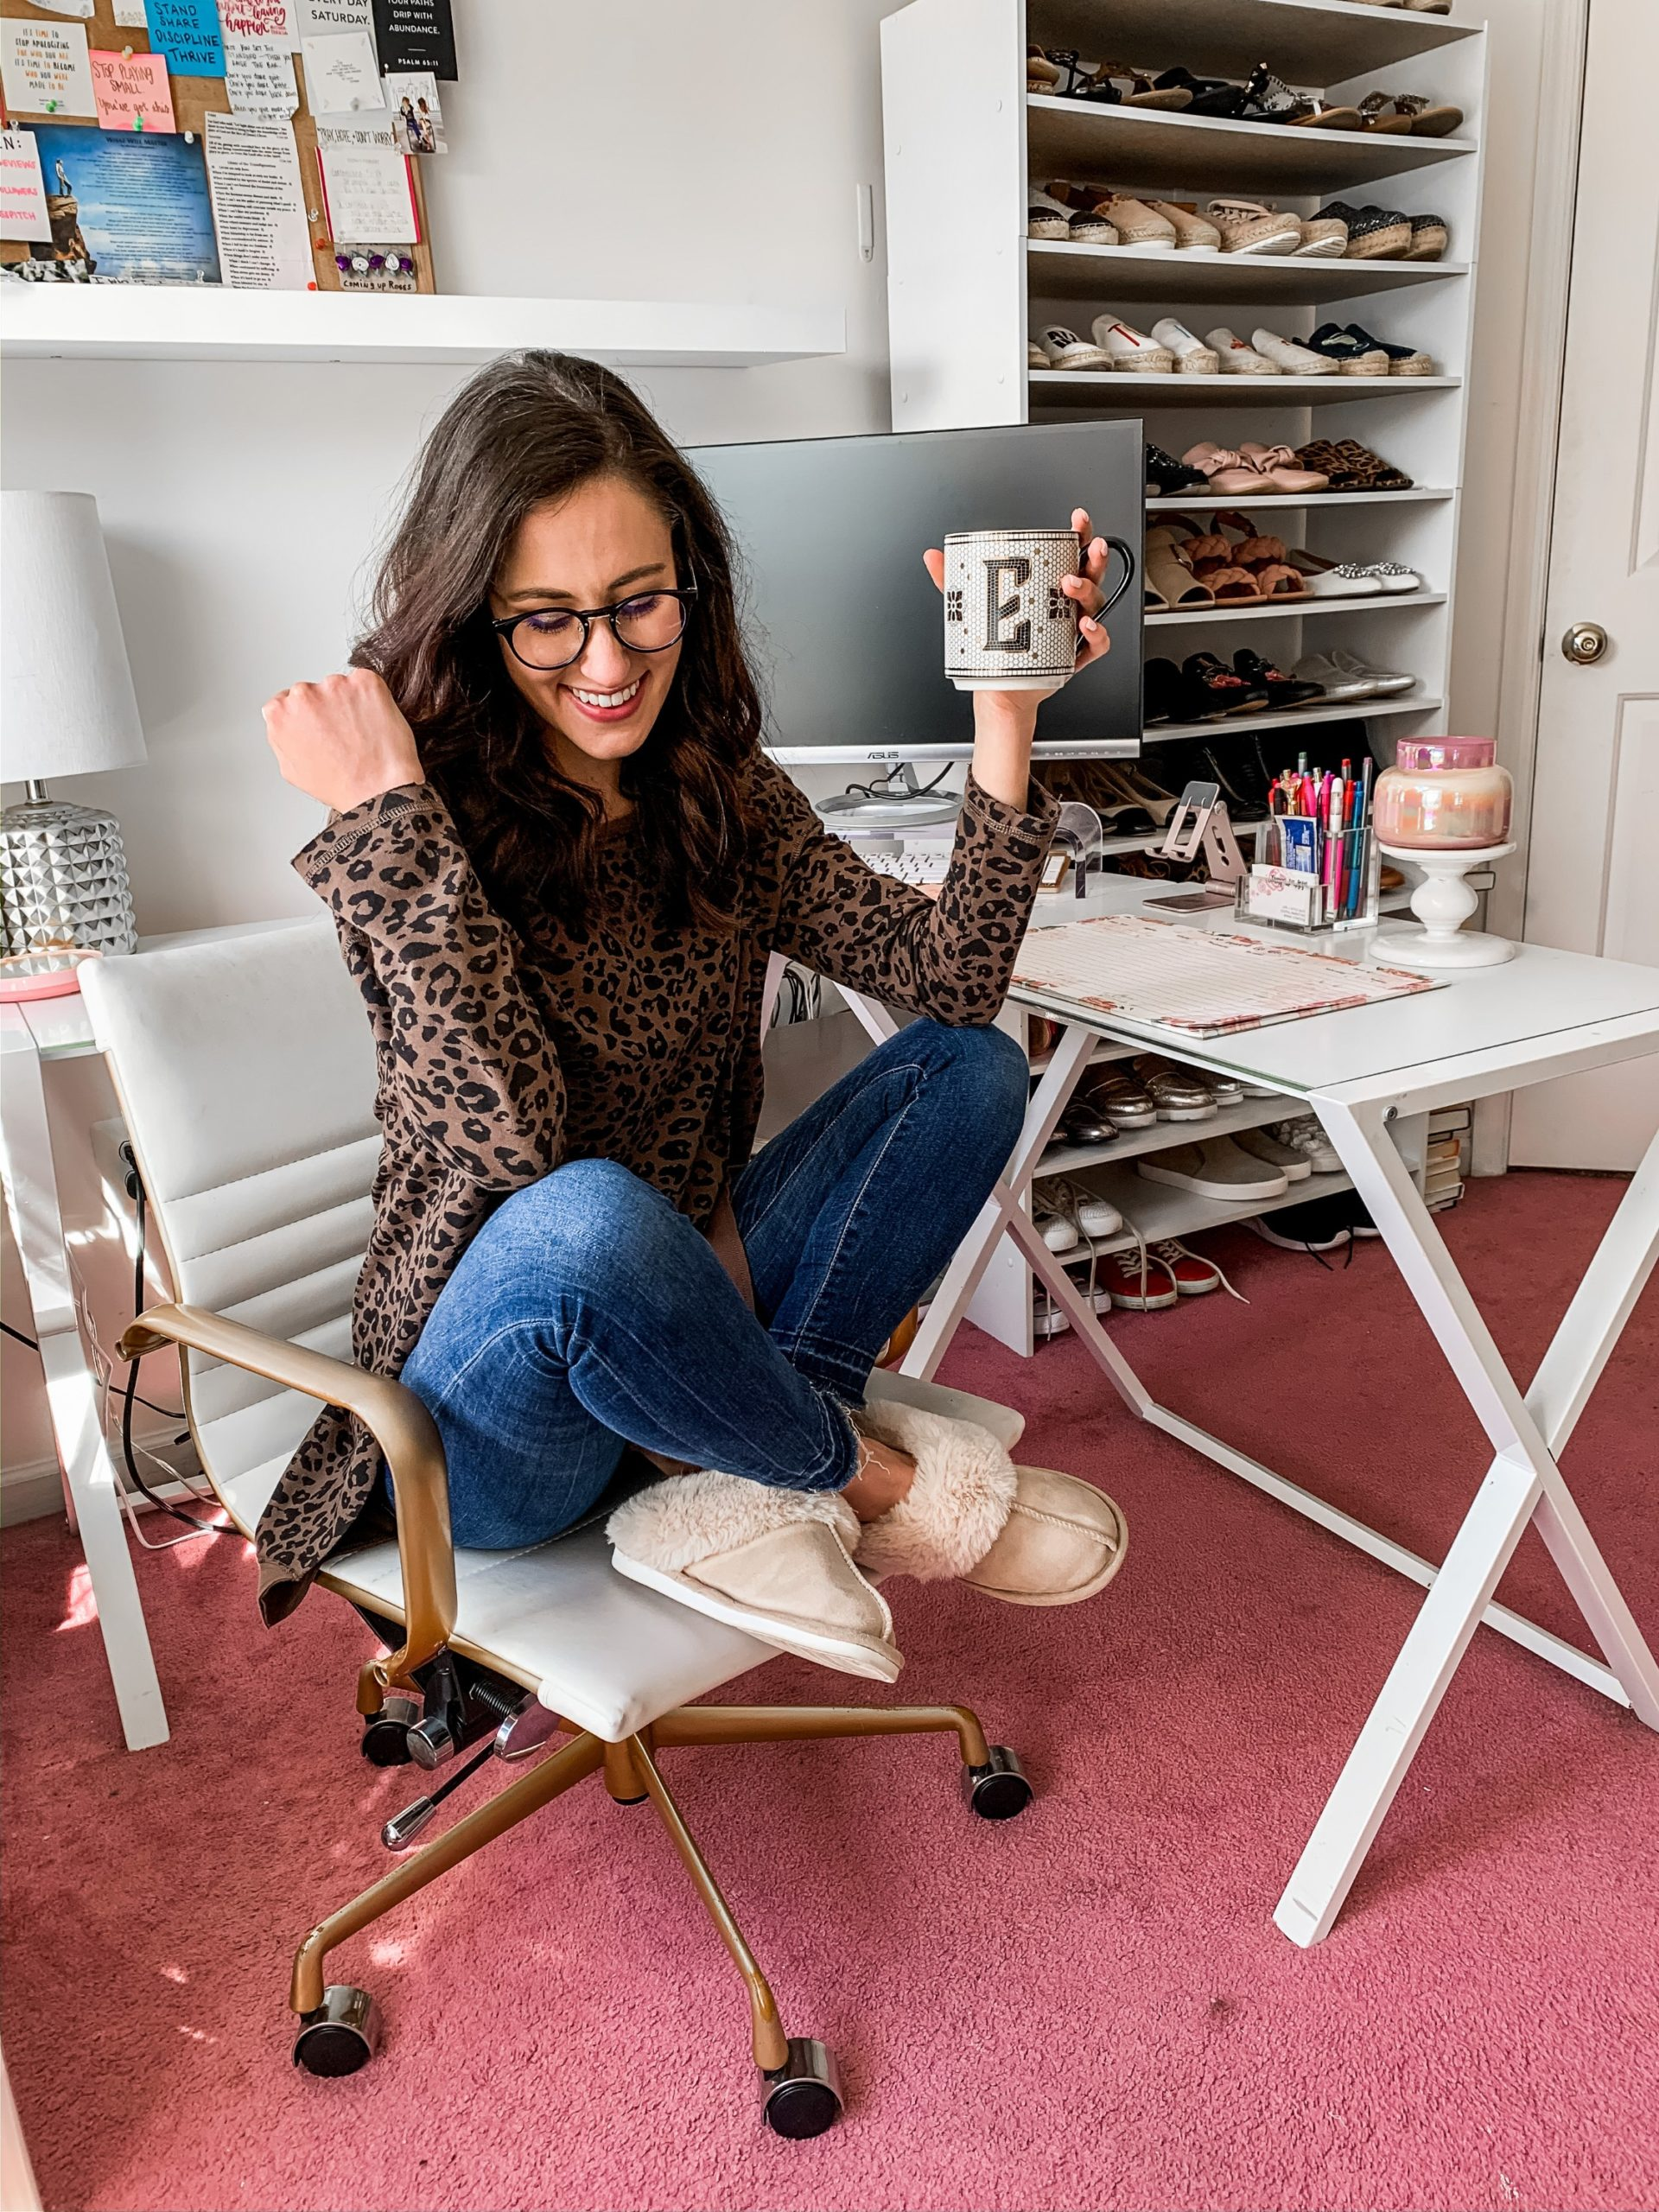 15 Tips for Being the Most Productive Working from Home (from a WFH Veteran!)